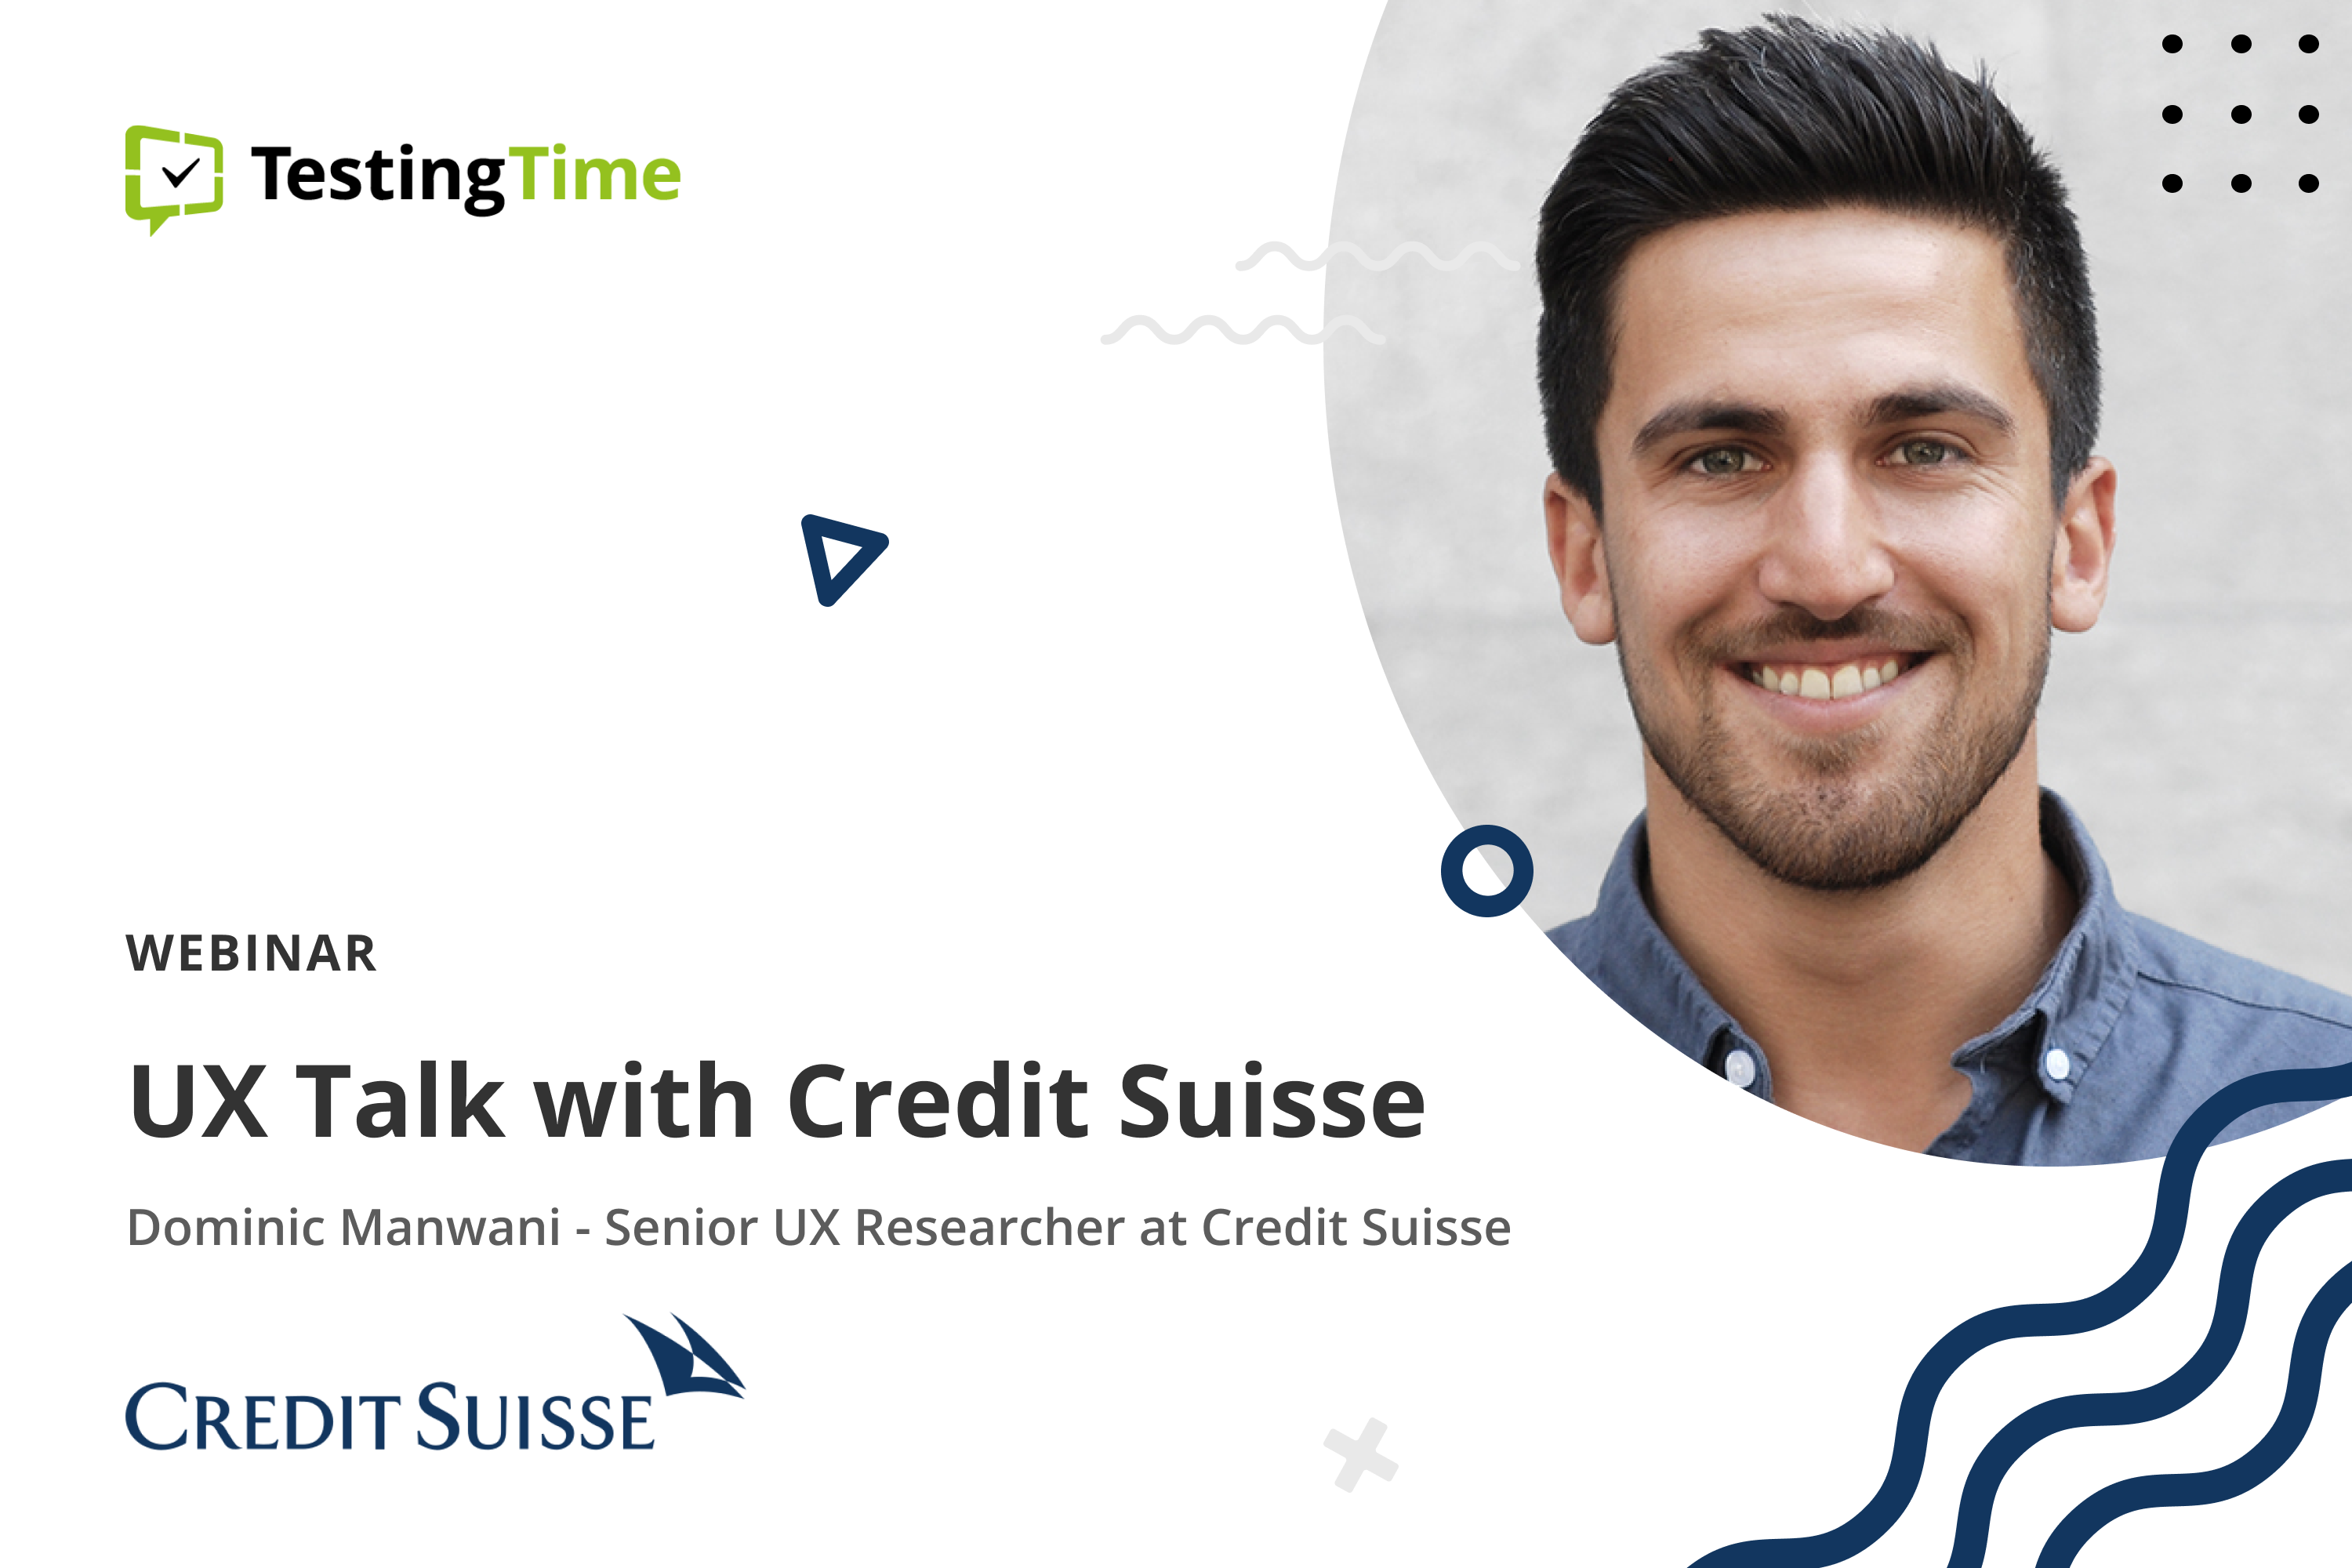 Landing Page Hubspot_Credit Suisse (without date)